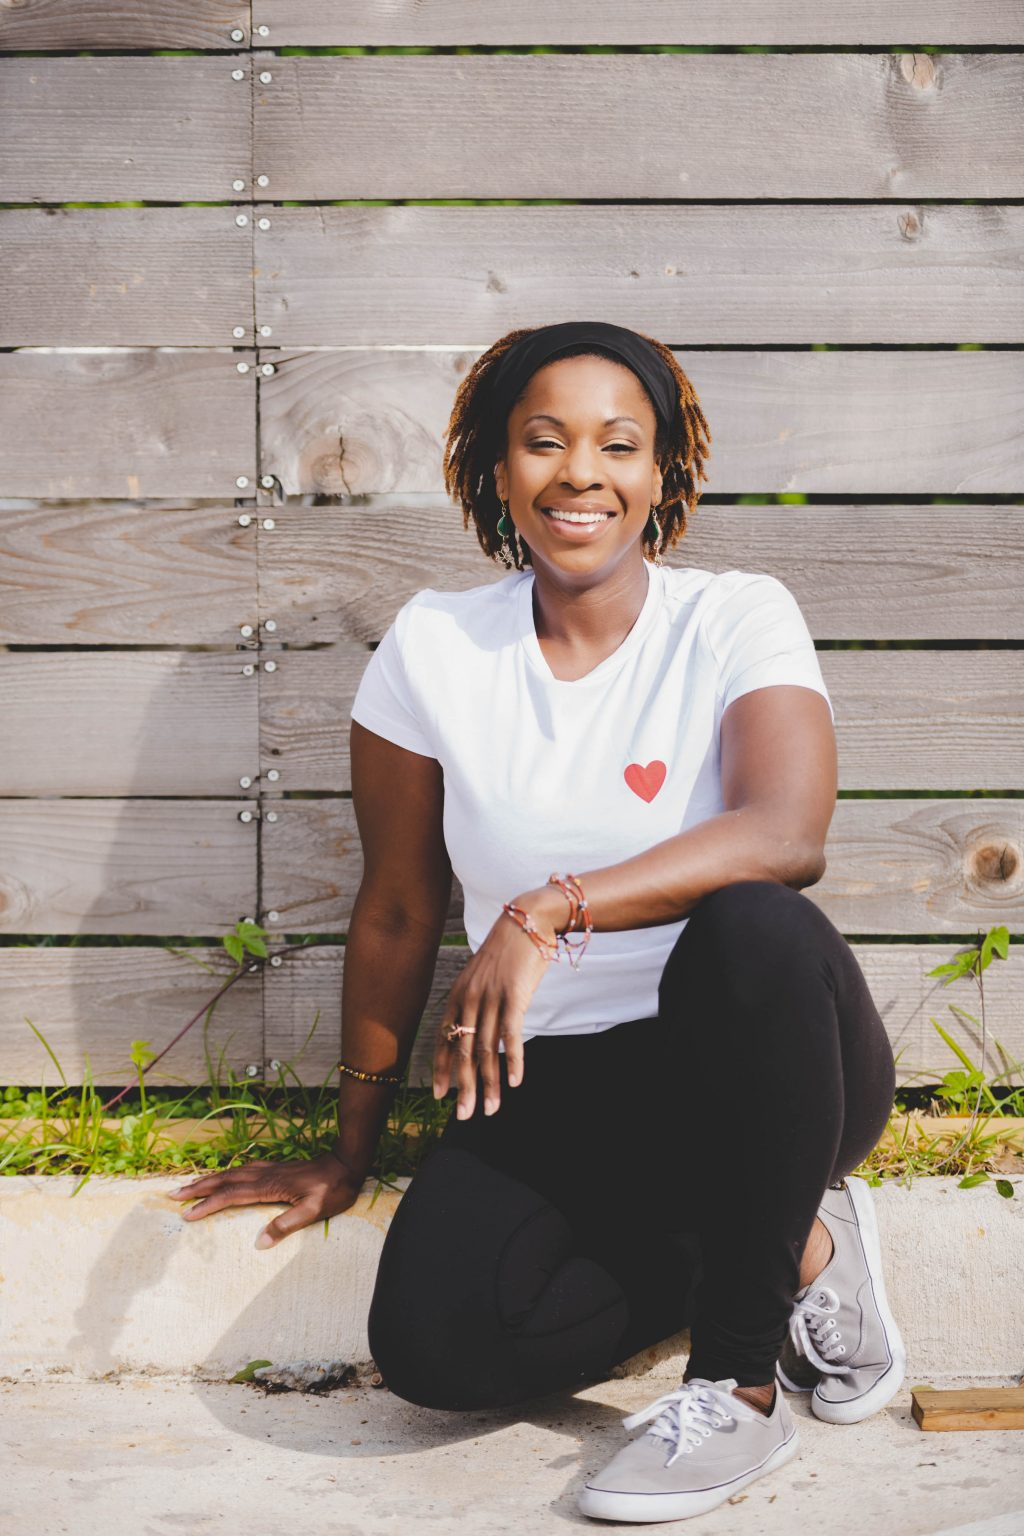 Personal Trainer Houston, Texas - Raquel Nweze